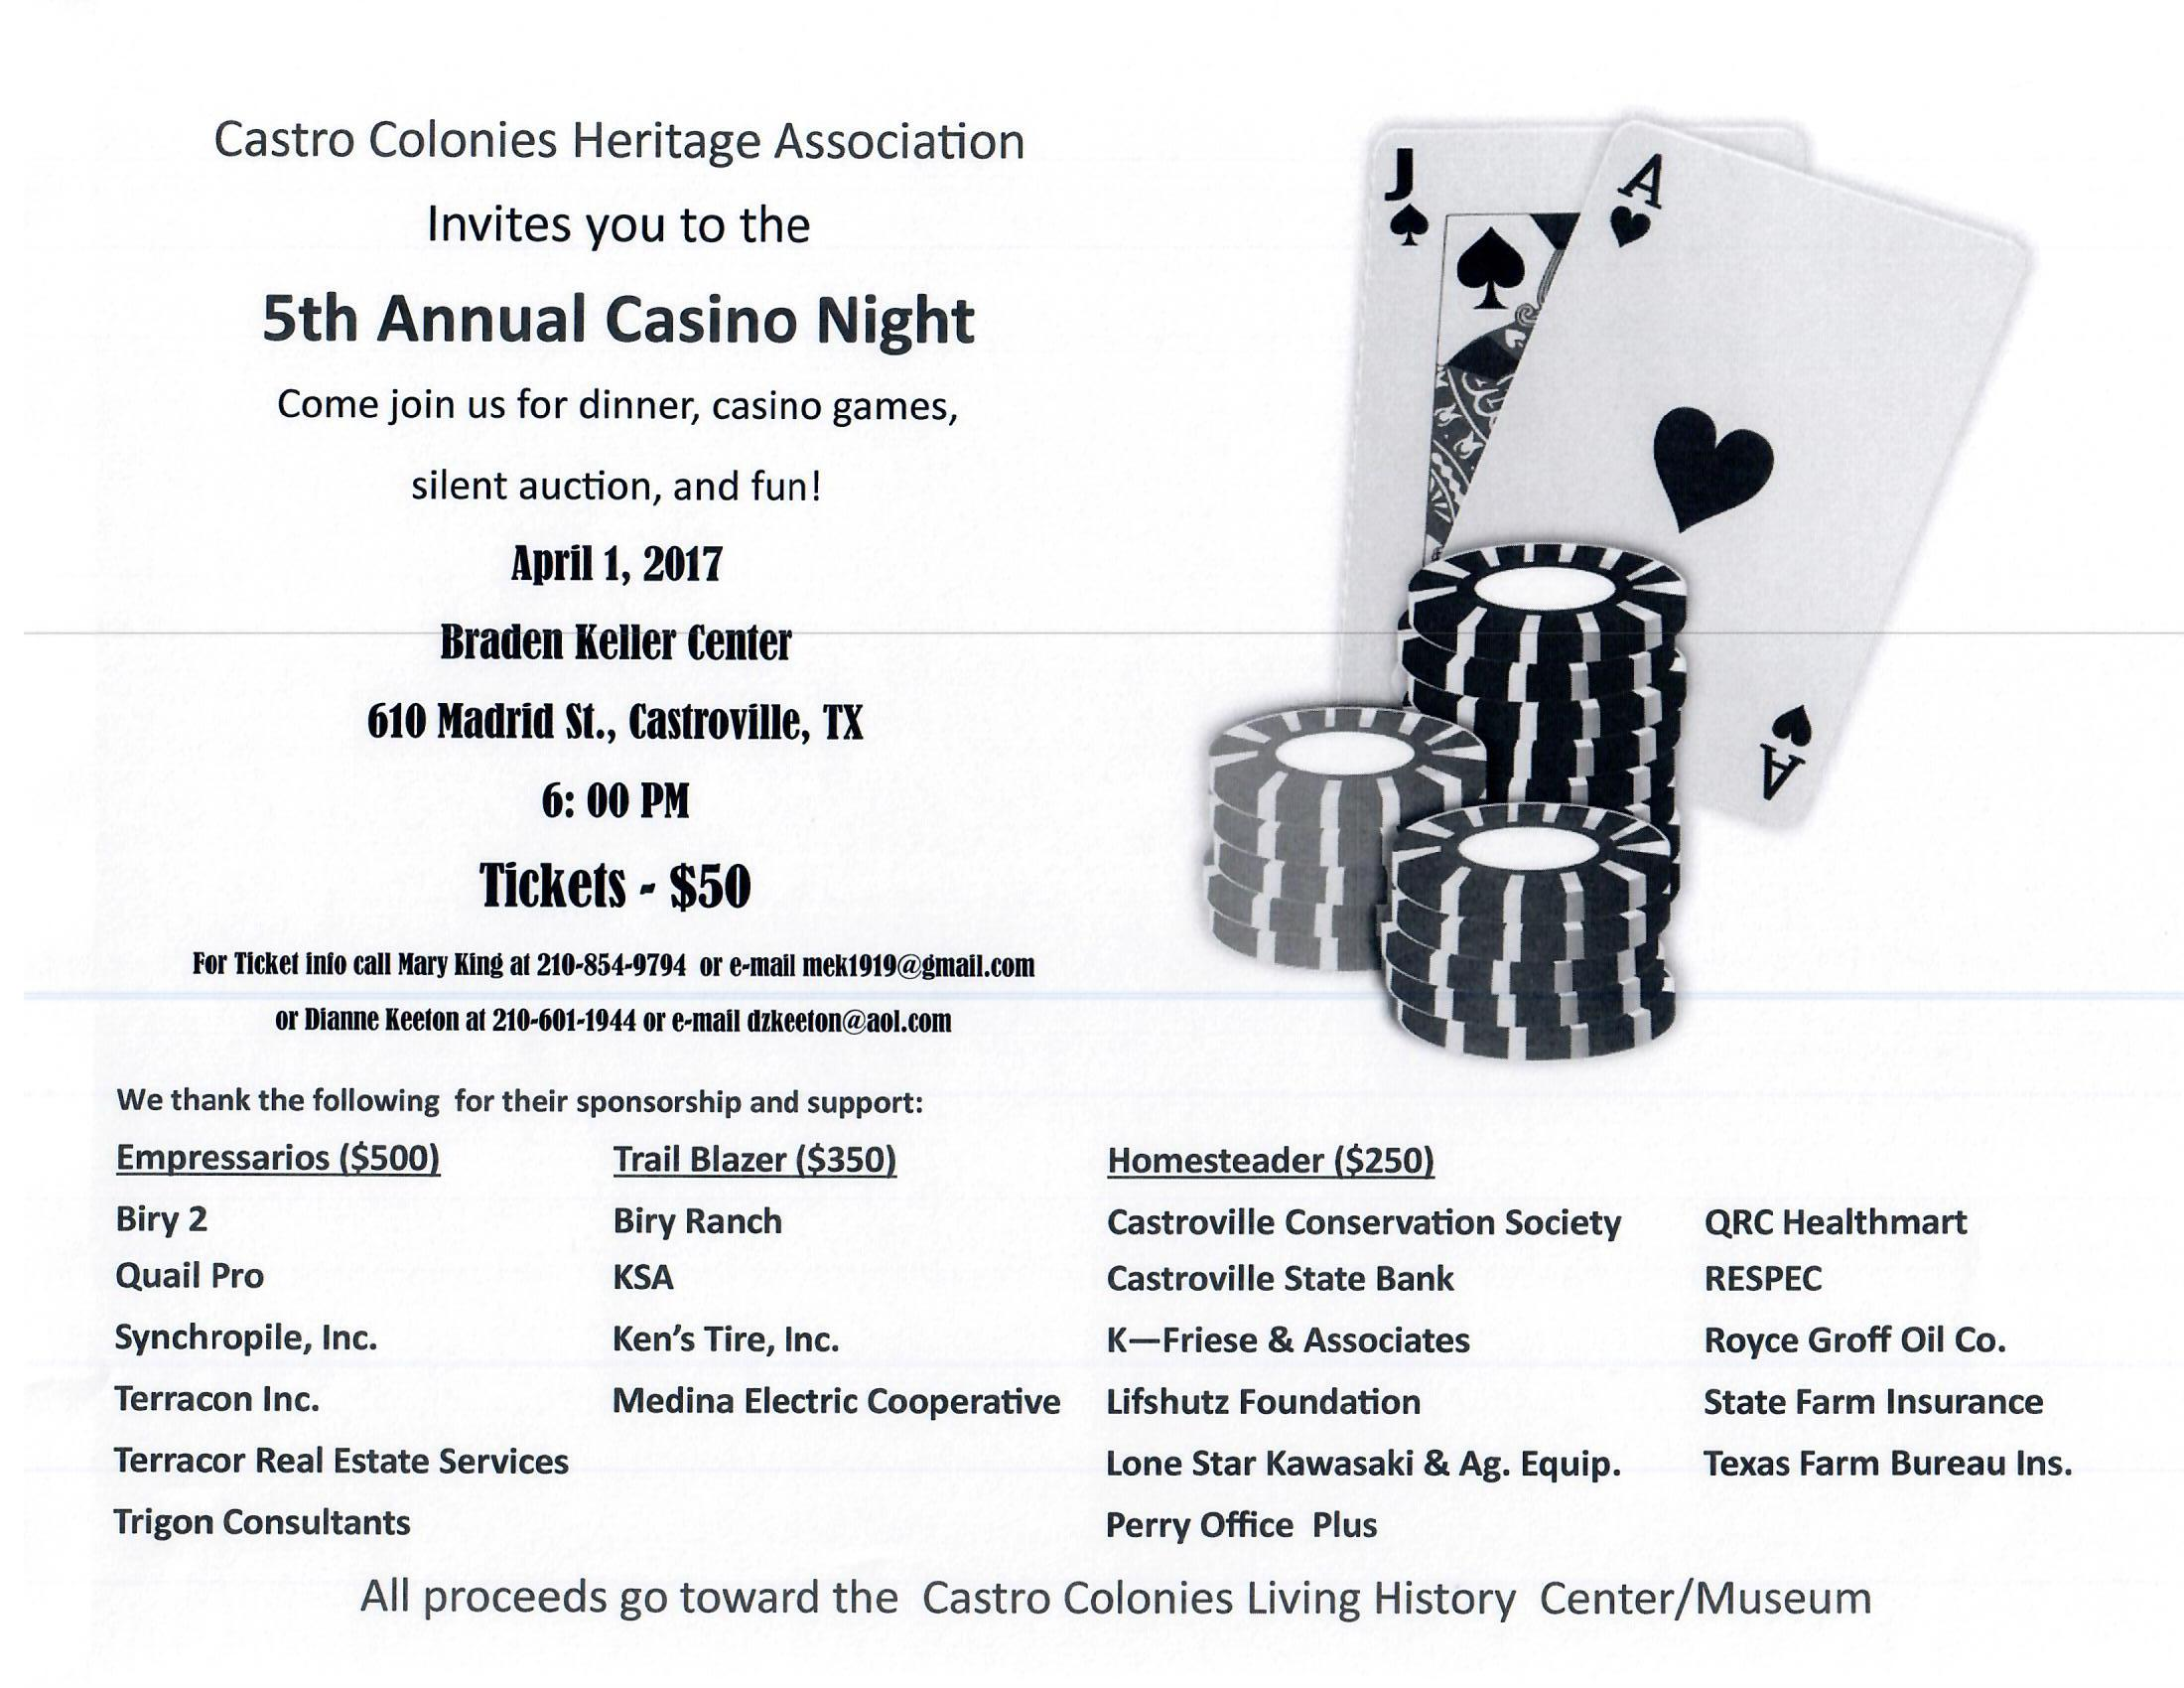 Castro Colonies Heritage Assoc. Casino Night